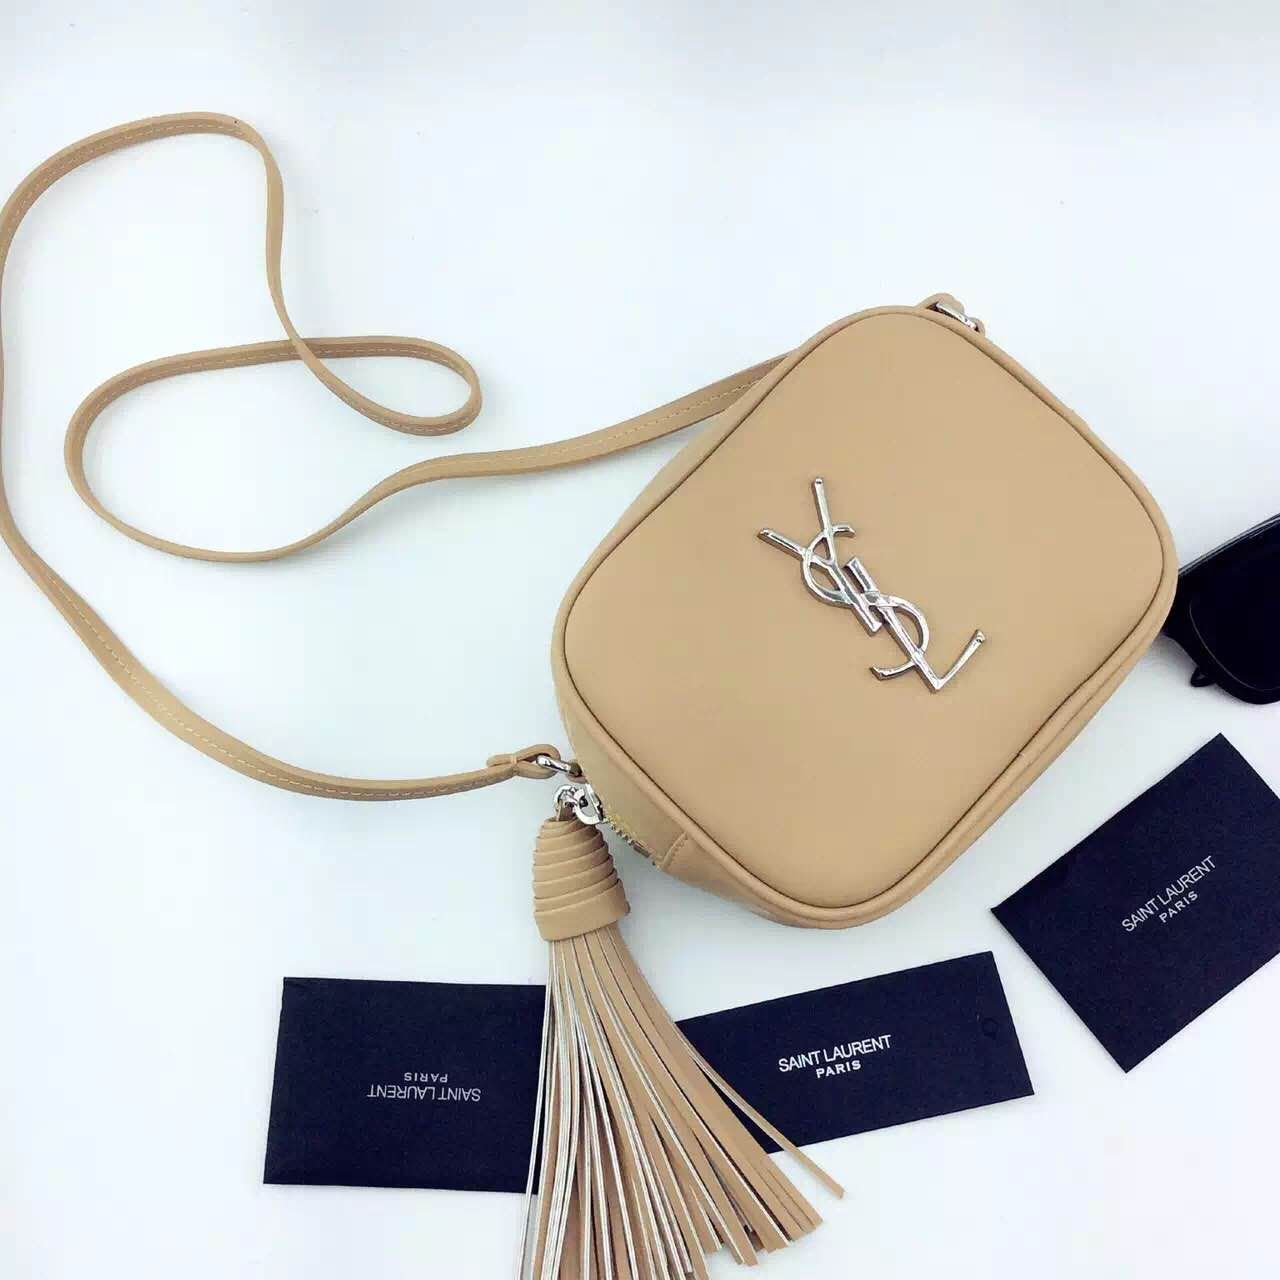 New Arrival!2016 Cheap YSL Out Sale with Free Shipping-Saint Laurent  Monogram Medium Blogger Bag in Dark Beige Leather 49c3233fc239b